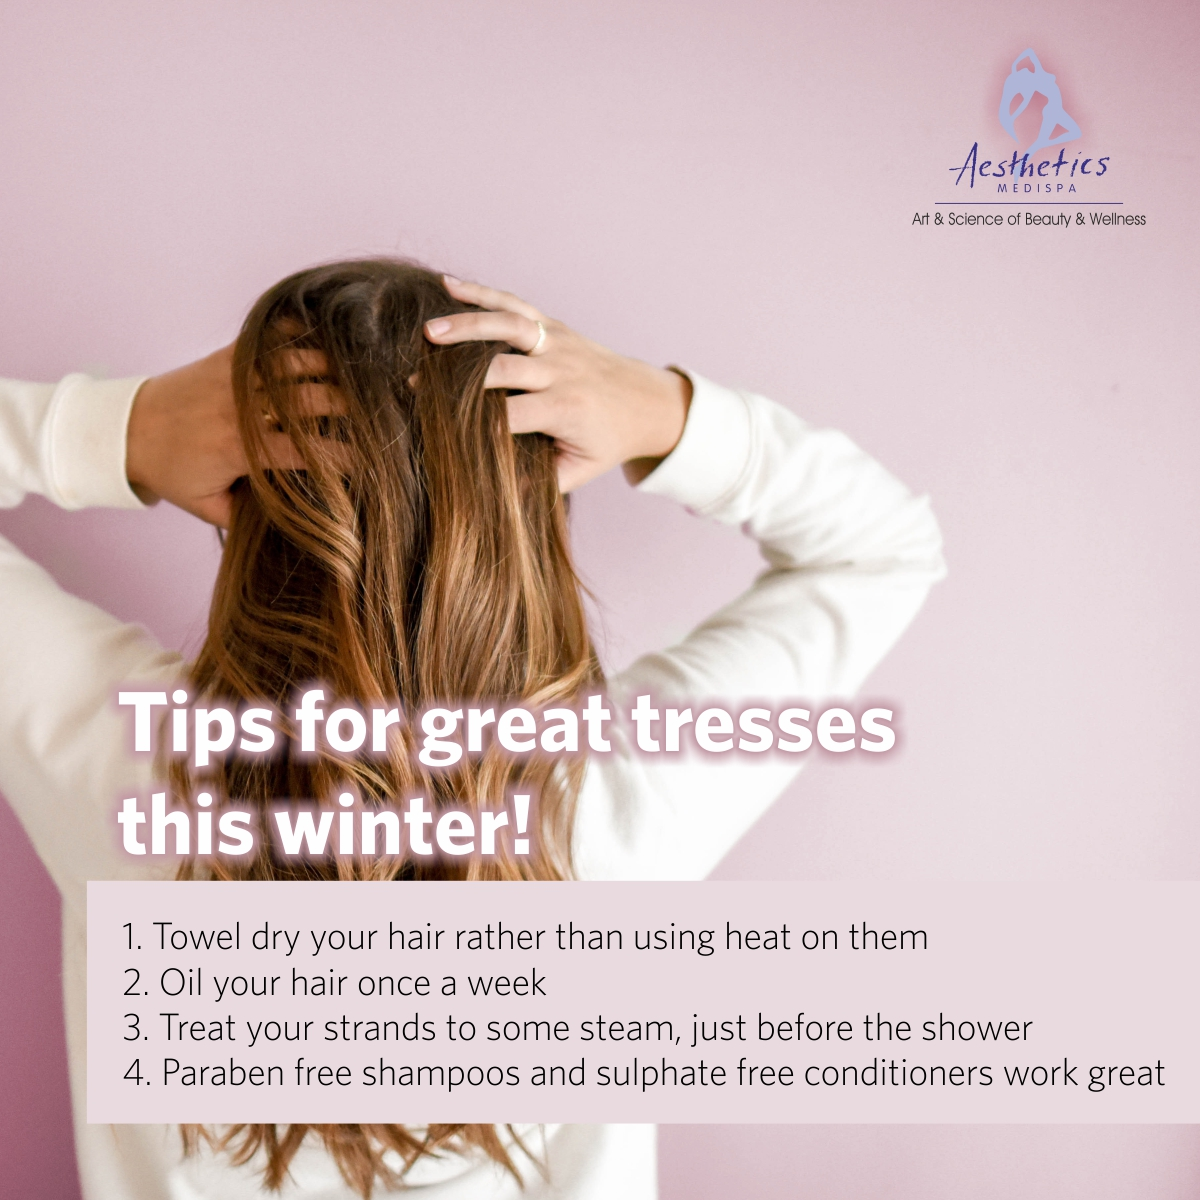 Aesthetics Medispa tips for great tresses this winter! . . . #AestheticsMedispa #haircare #hairtips #wintercaretips #wintercarehair #greathair #haelthcaretips #wintertress #tips #hairloss #hairtreatments #greathairs #followhaircare #Punepic.twitter.com/pa6qrOBTCO